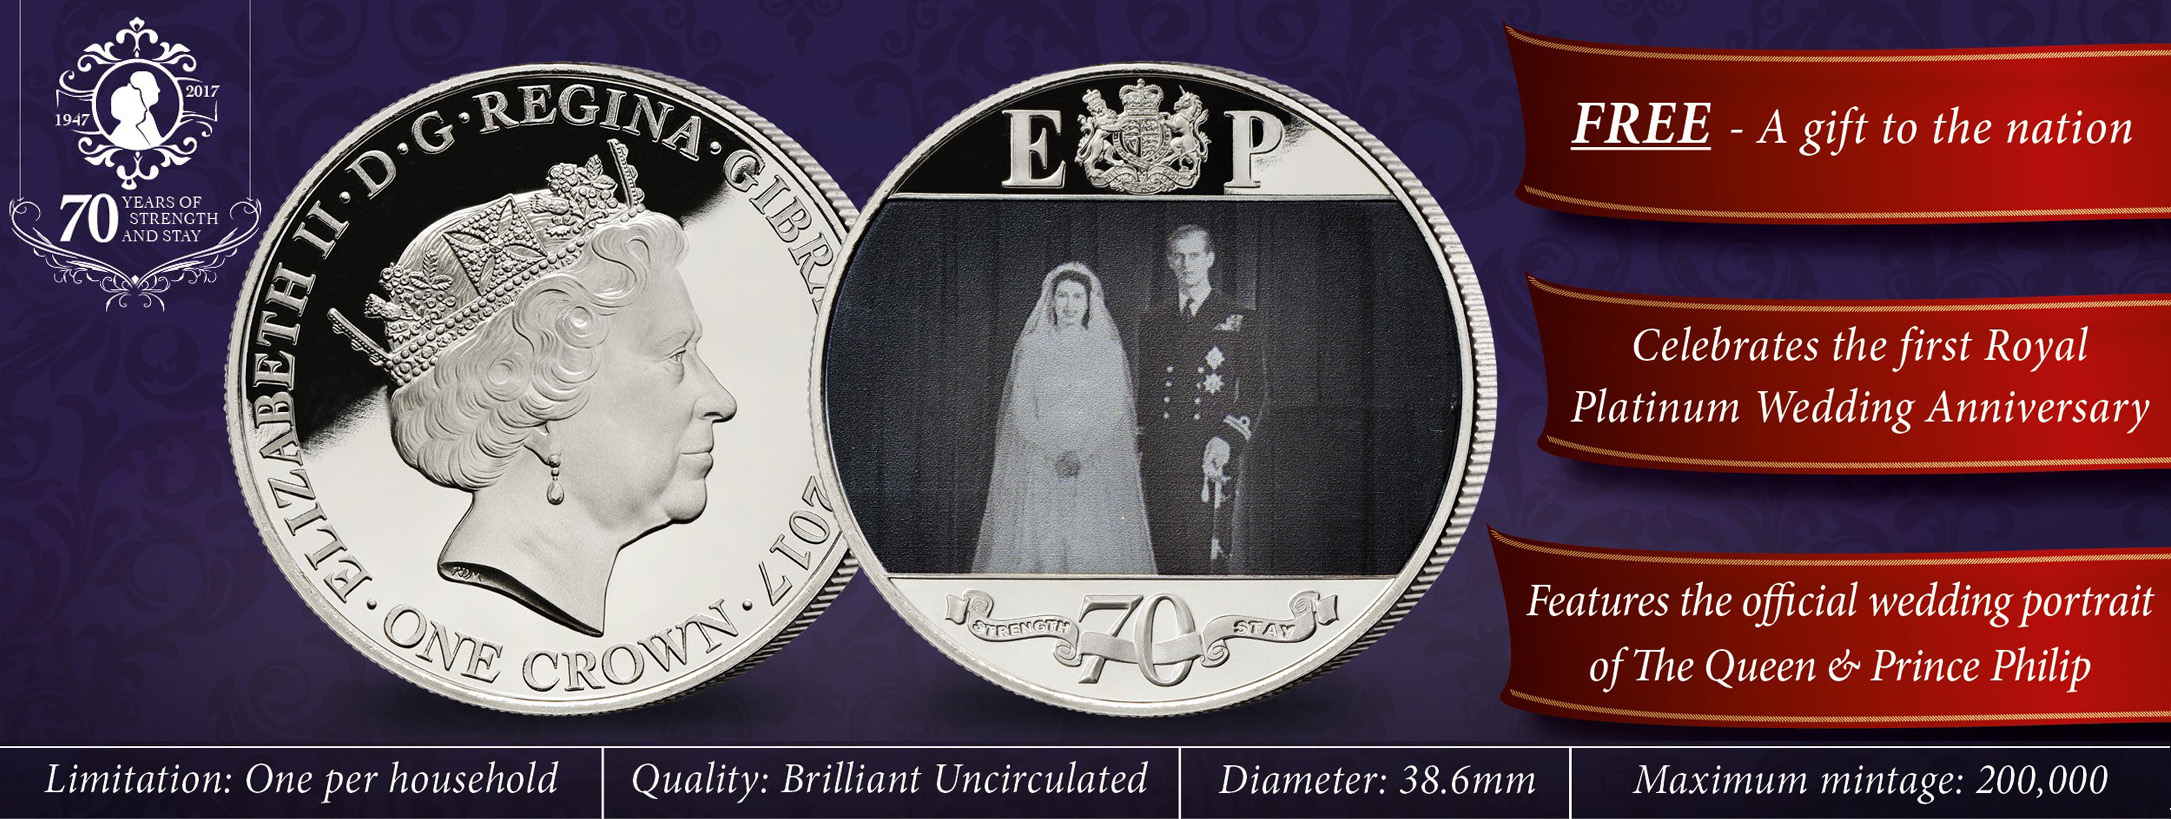 The Royal Platinum Wedding Anniversary Photographic Coin